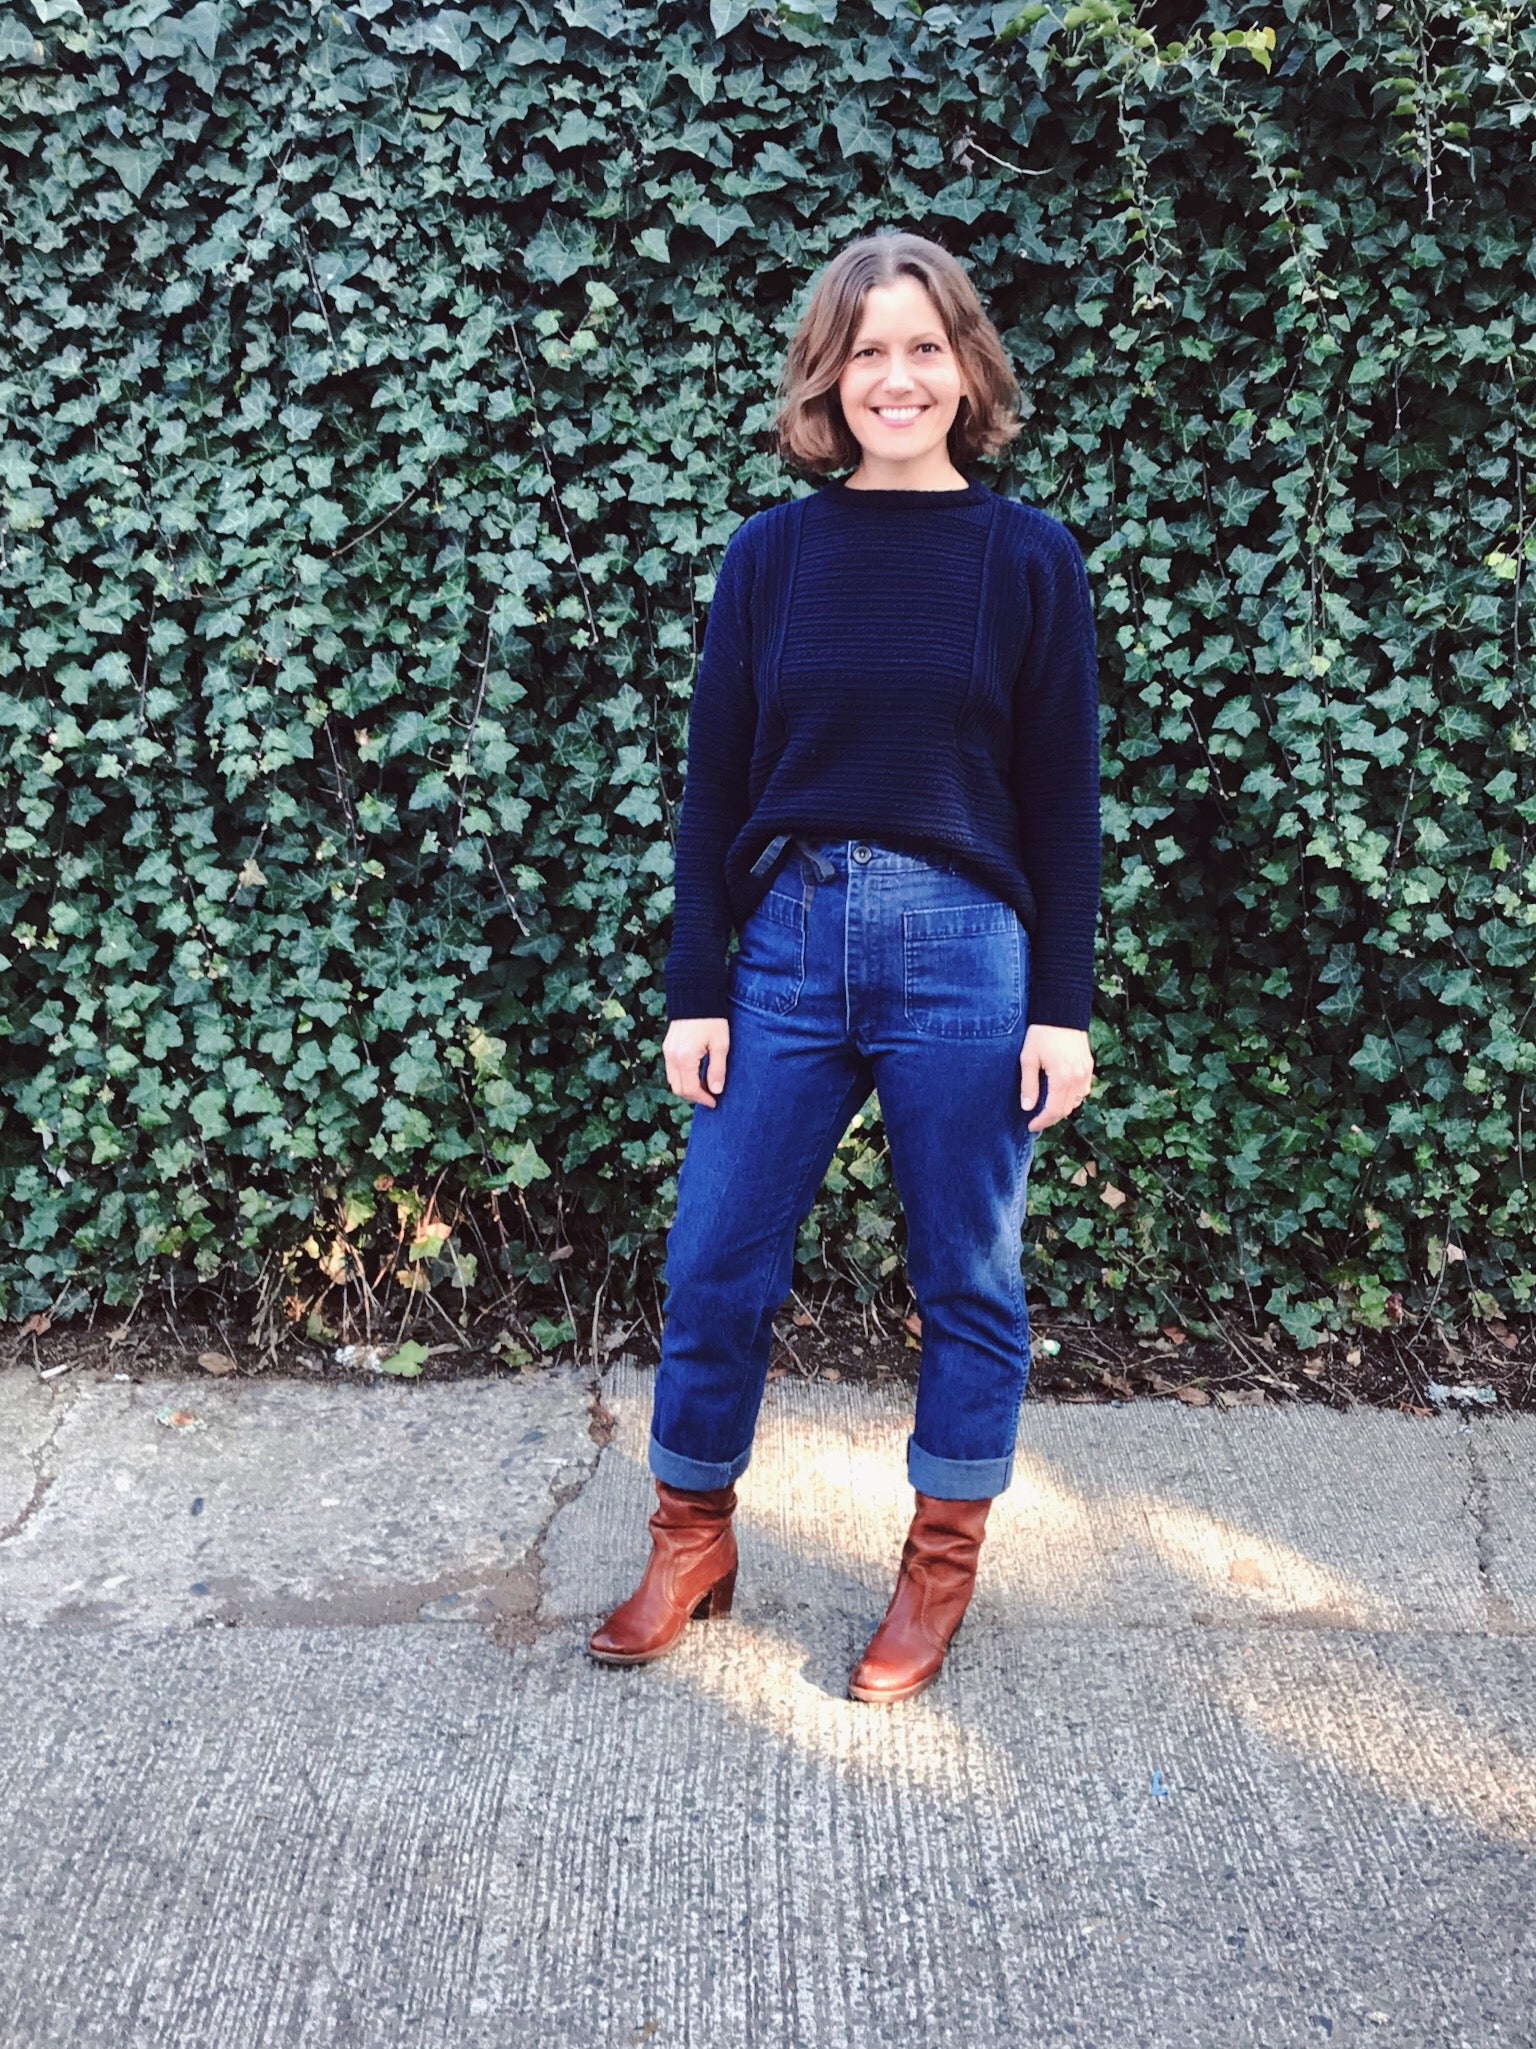 lis wearing her top down pull over weidlinger hand knit sweater